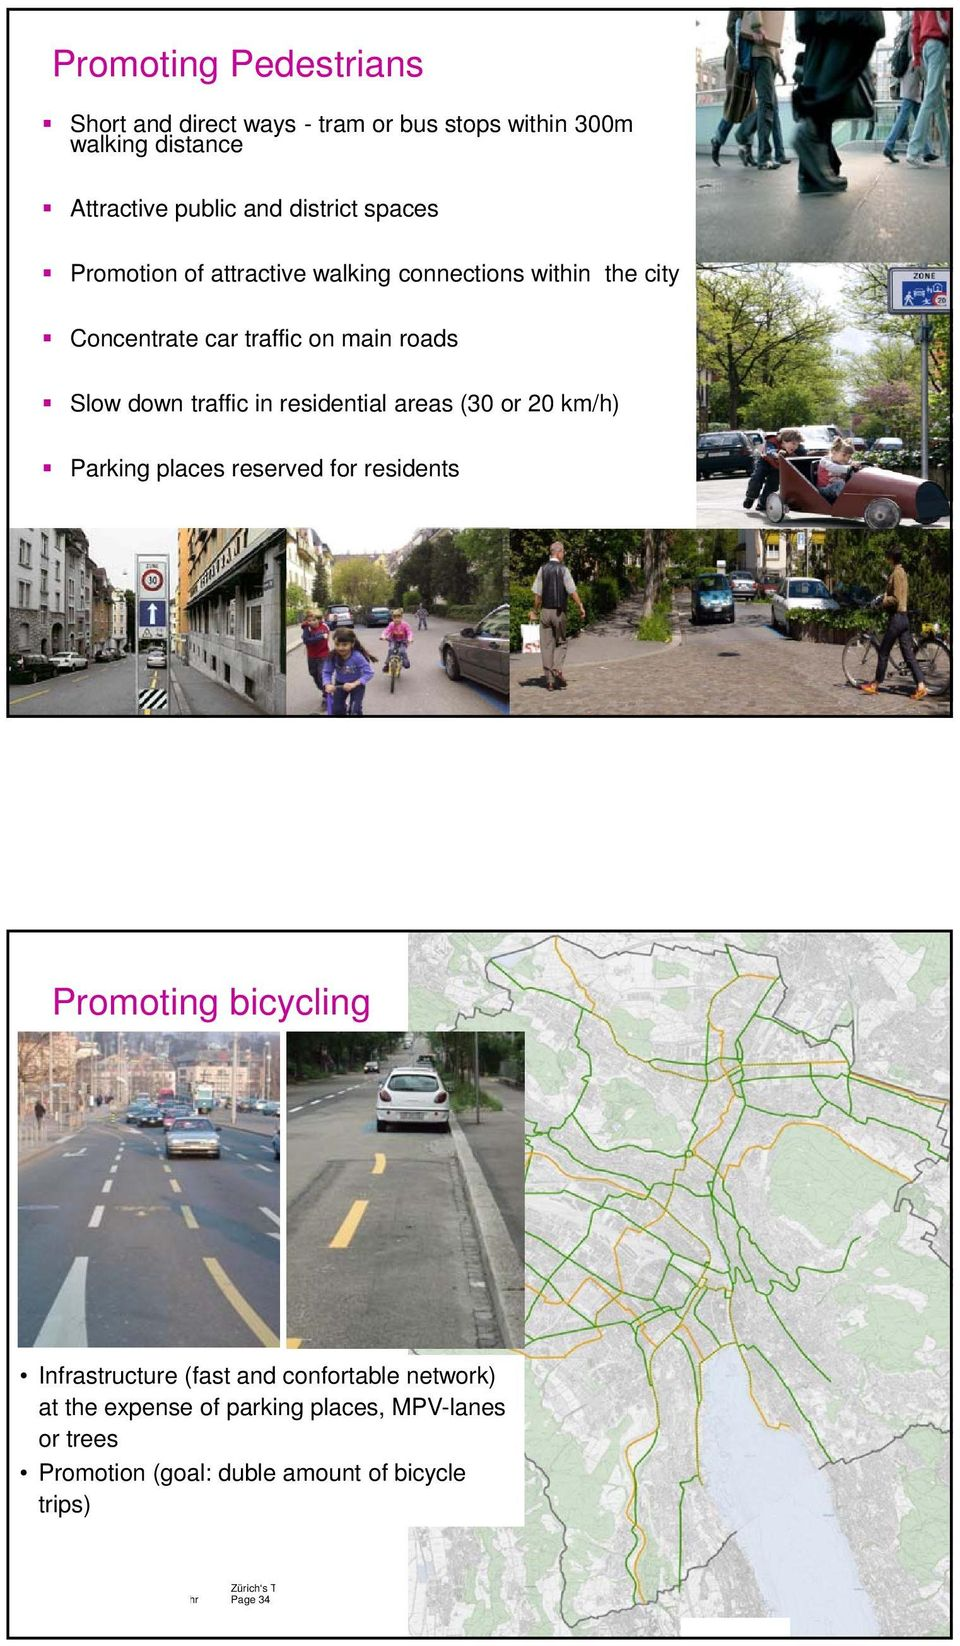 residential areas (30 or 20 km/h) Parking places reserved for residents Page 33 Promoting bicycling Infrastructure (fast and